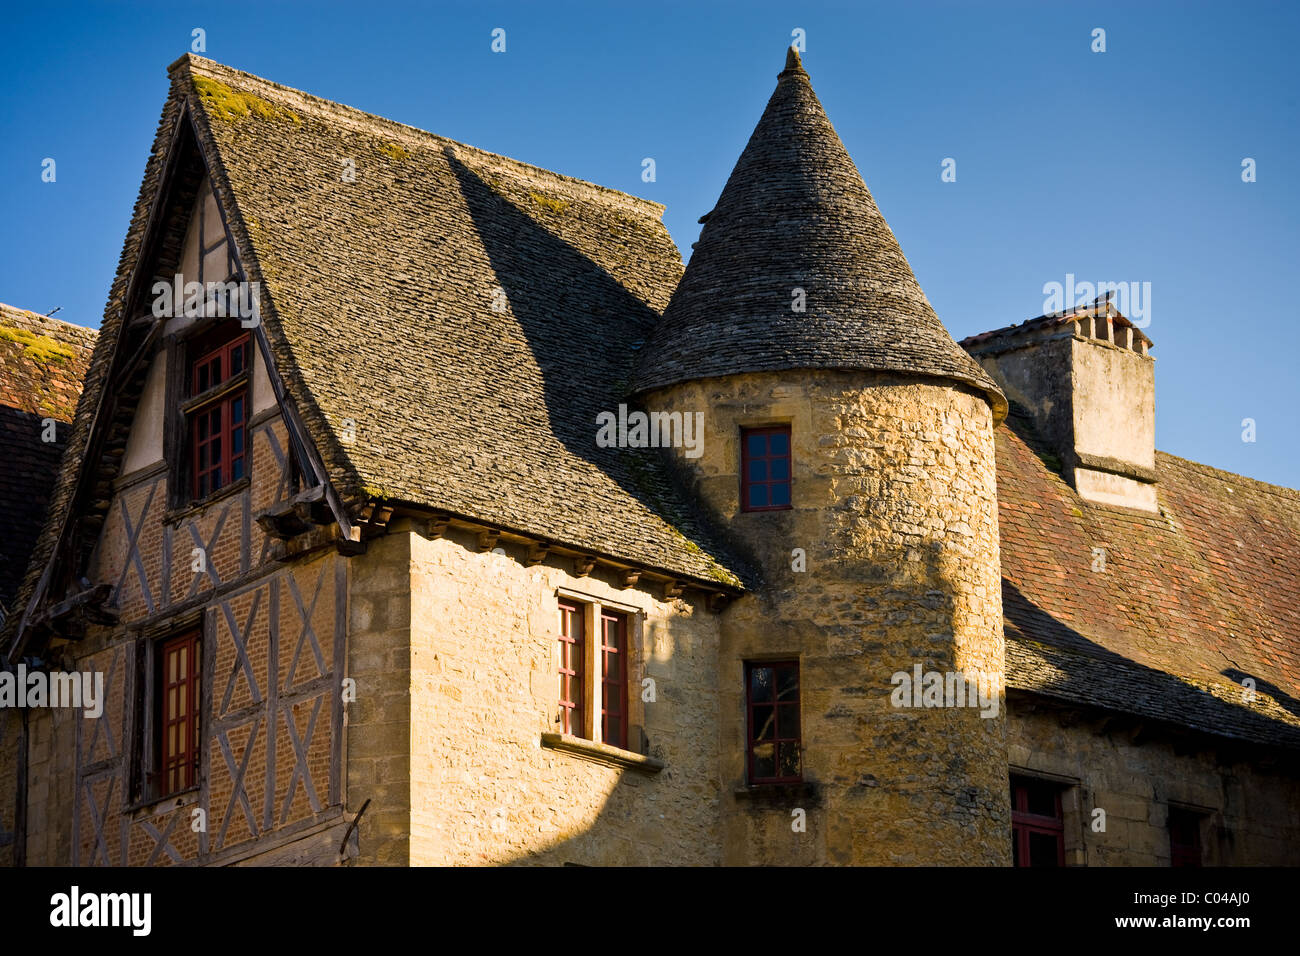 Typical French architecture in popular picturesque tourist destination of Sarlat in Dordogne, France - Stock Image